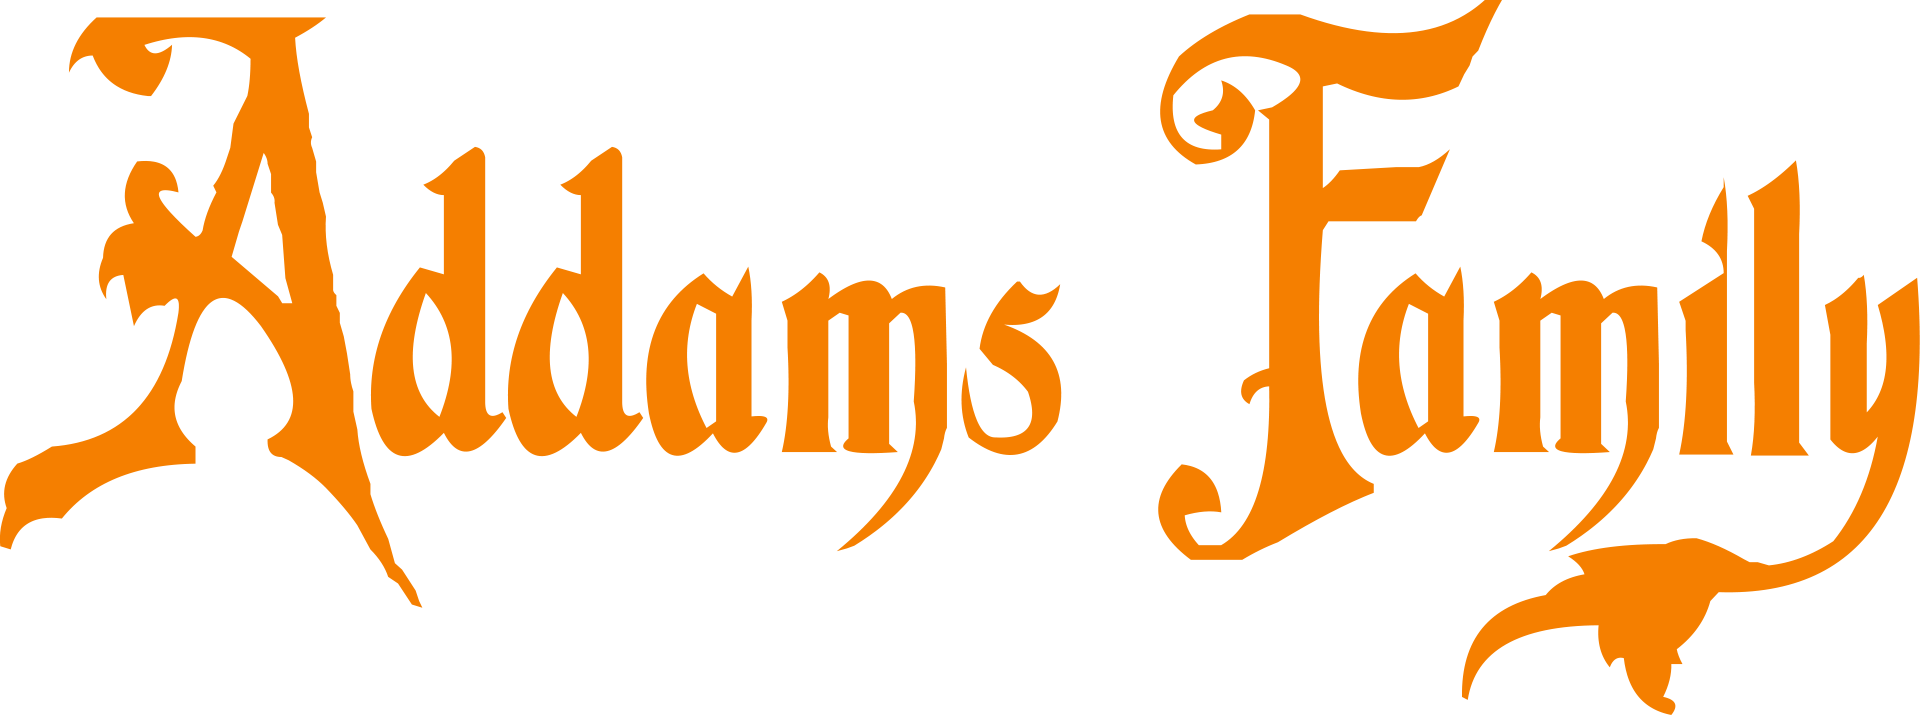 Addams Family Font